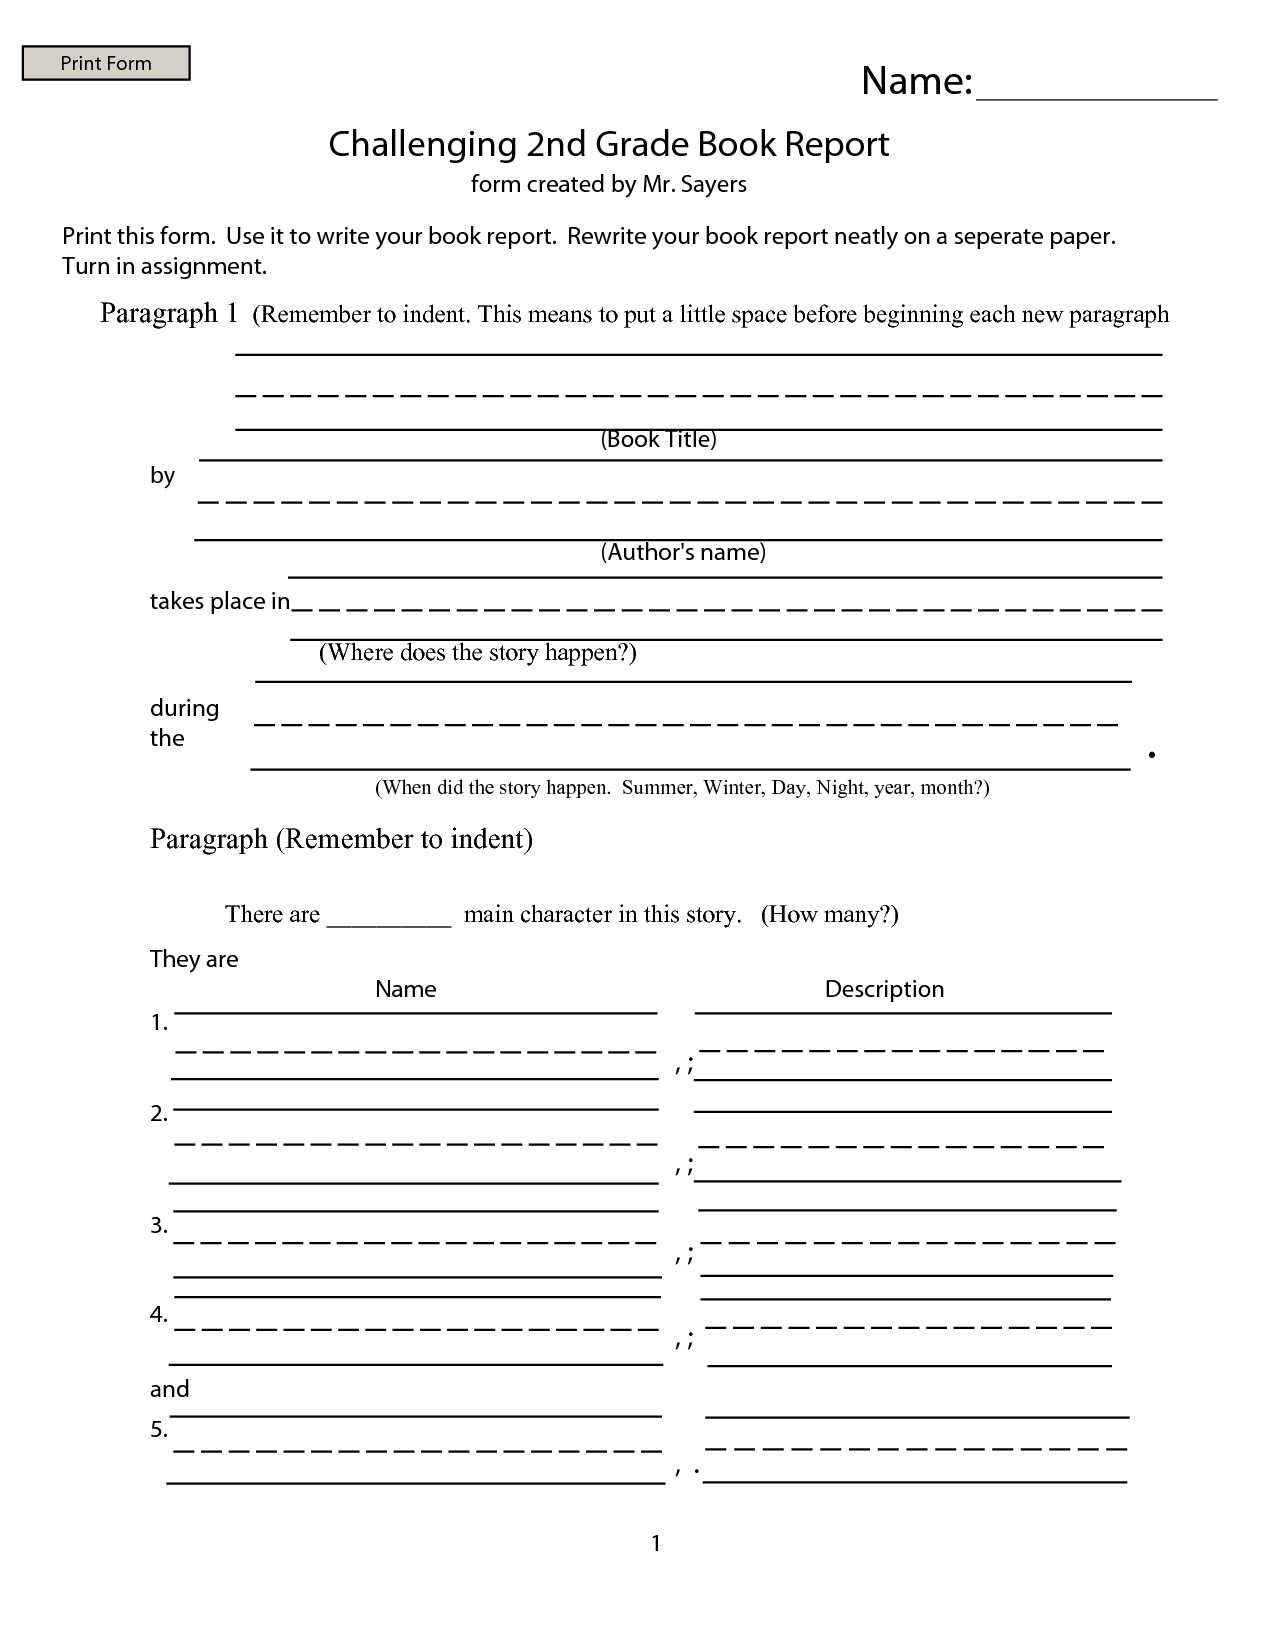 Worksheet Free Printable Books For 2nd Grade do book reports 1st grade report forms free printable for st nd nd